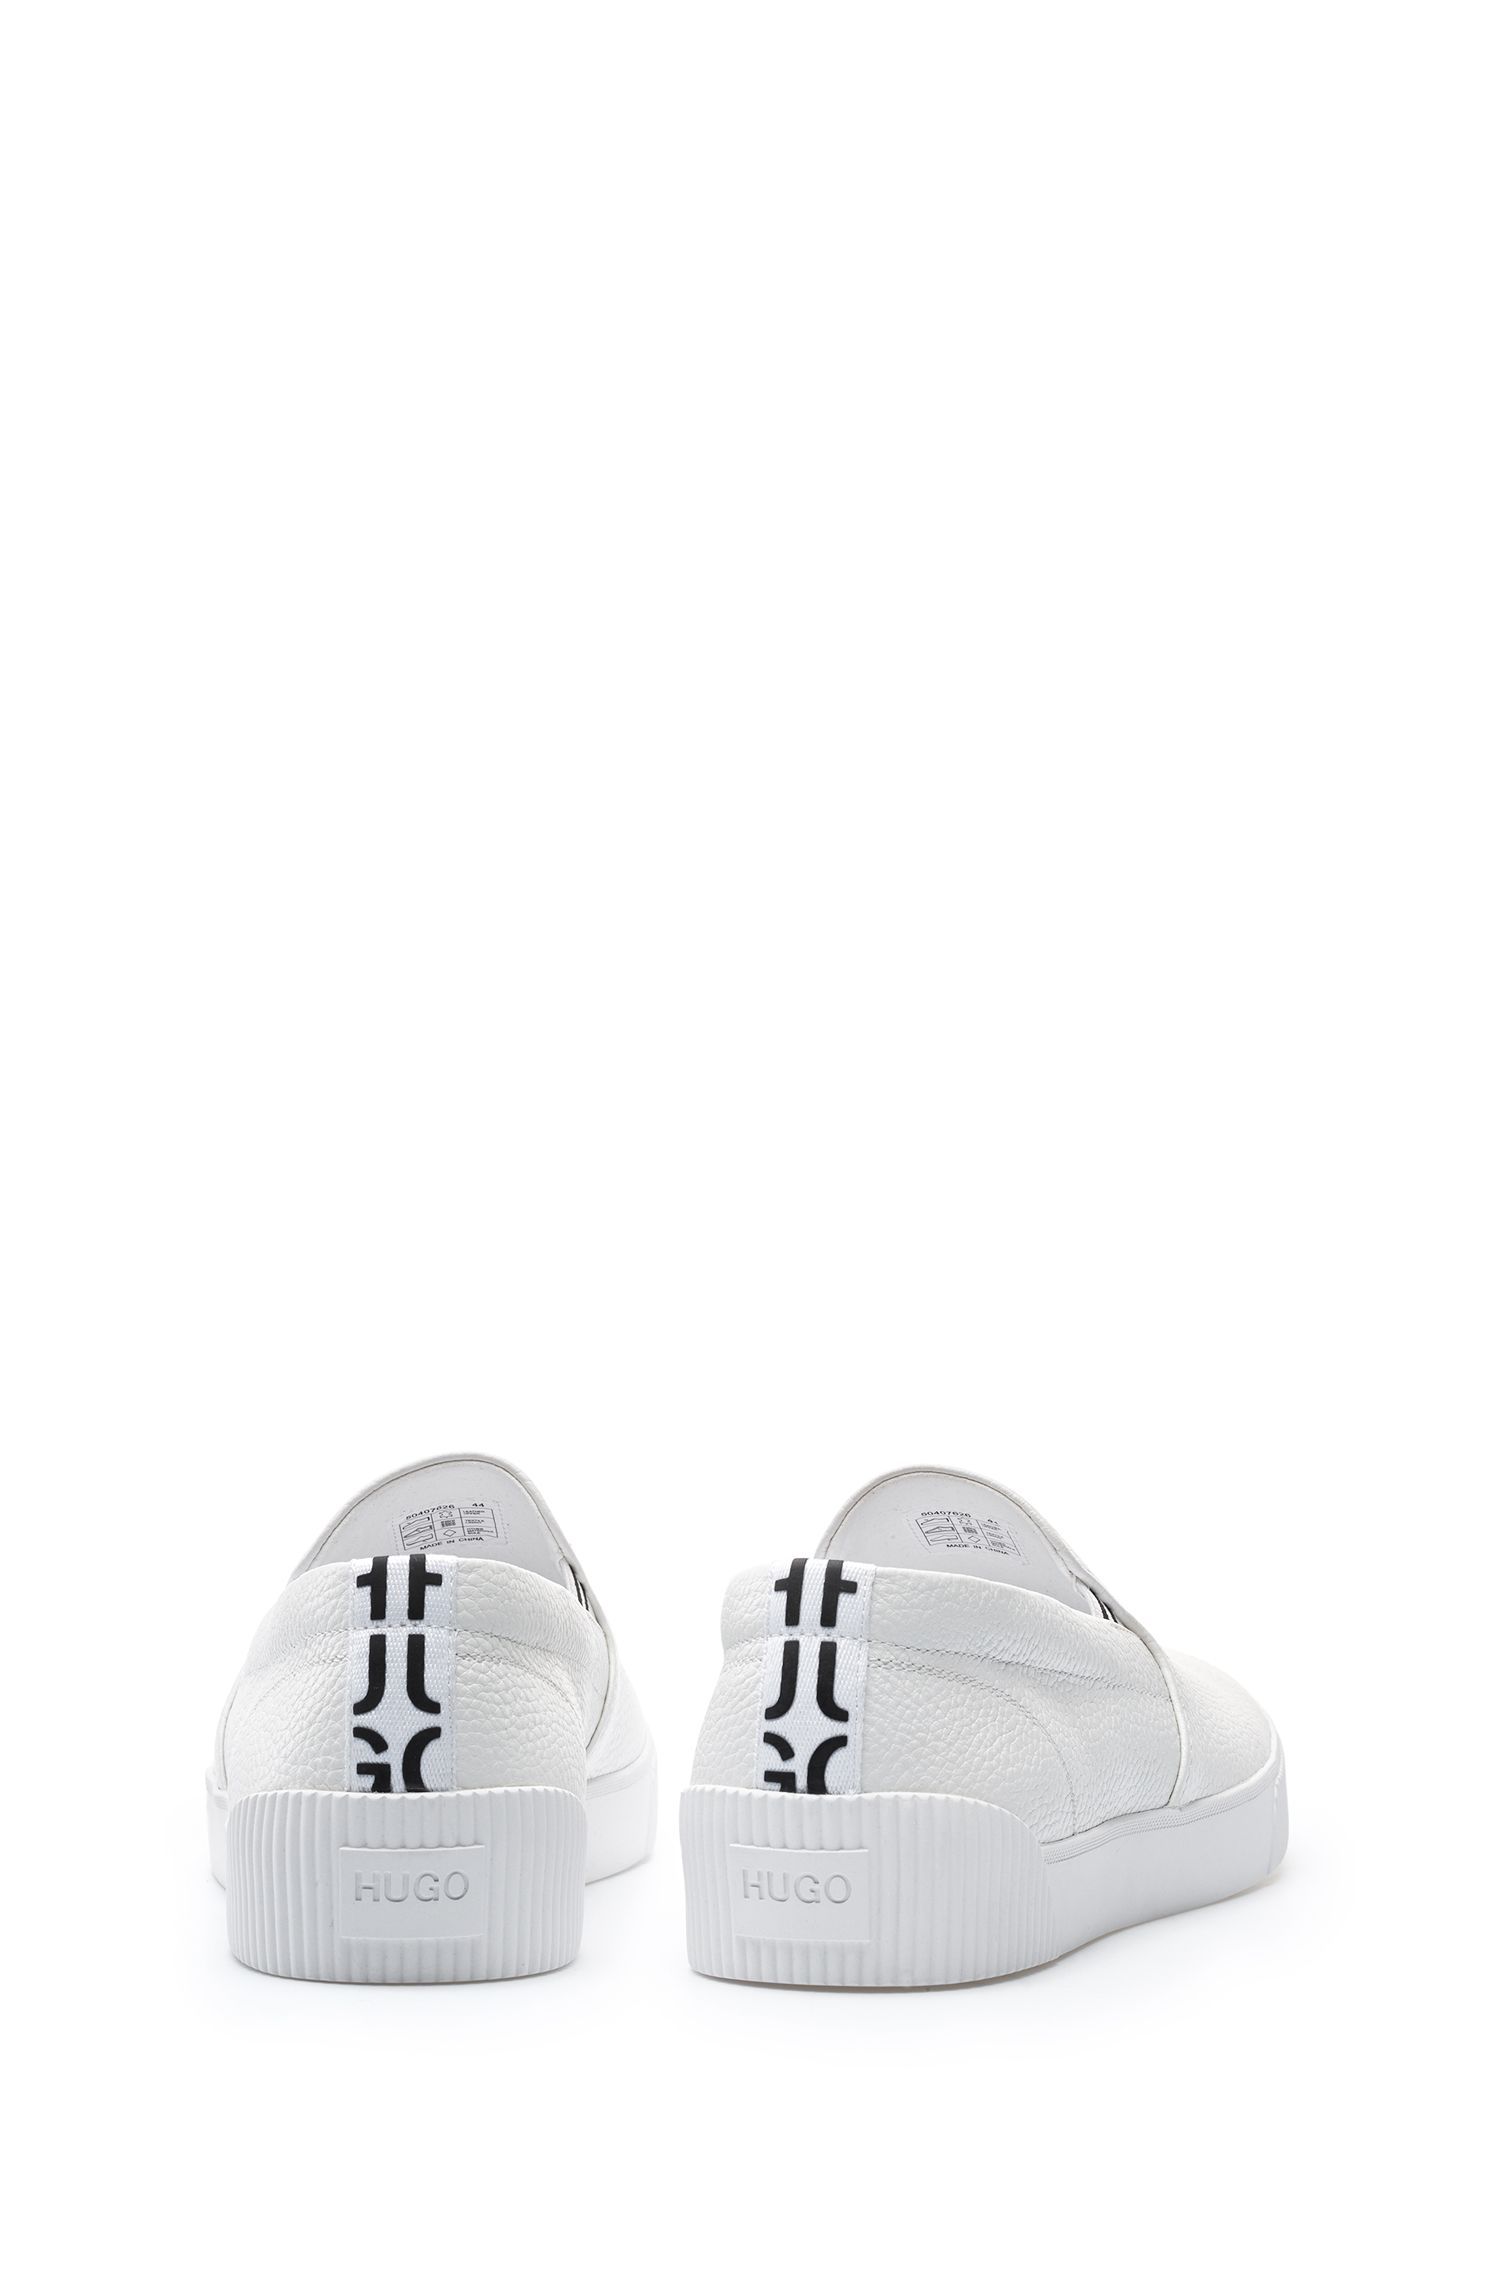 Hugo Boss - Slip-on trainers with grainy calf-leather uppers - 5